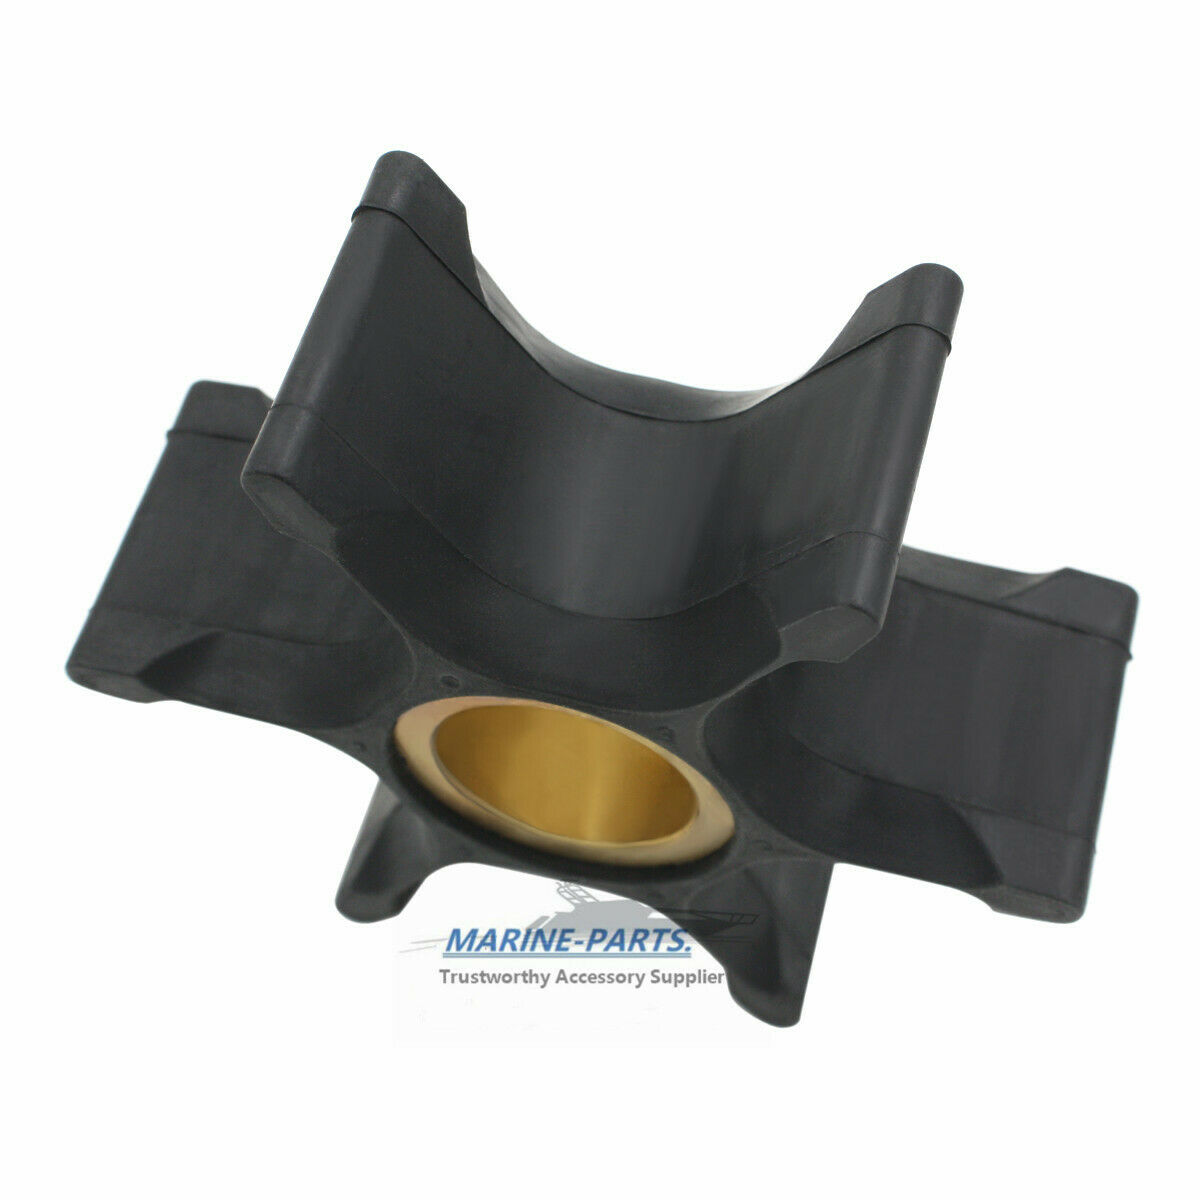 395864 397131 435821 435748 Boat Motor Water Pump Impeller for Johnson Evinrude